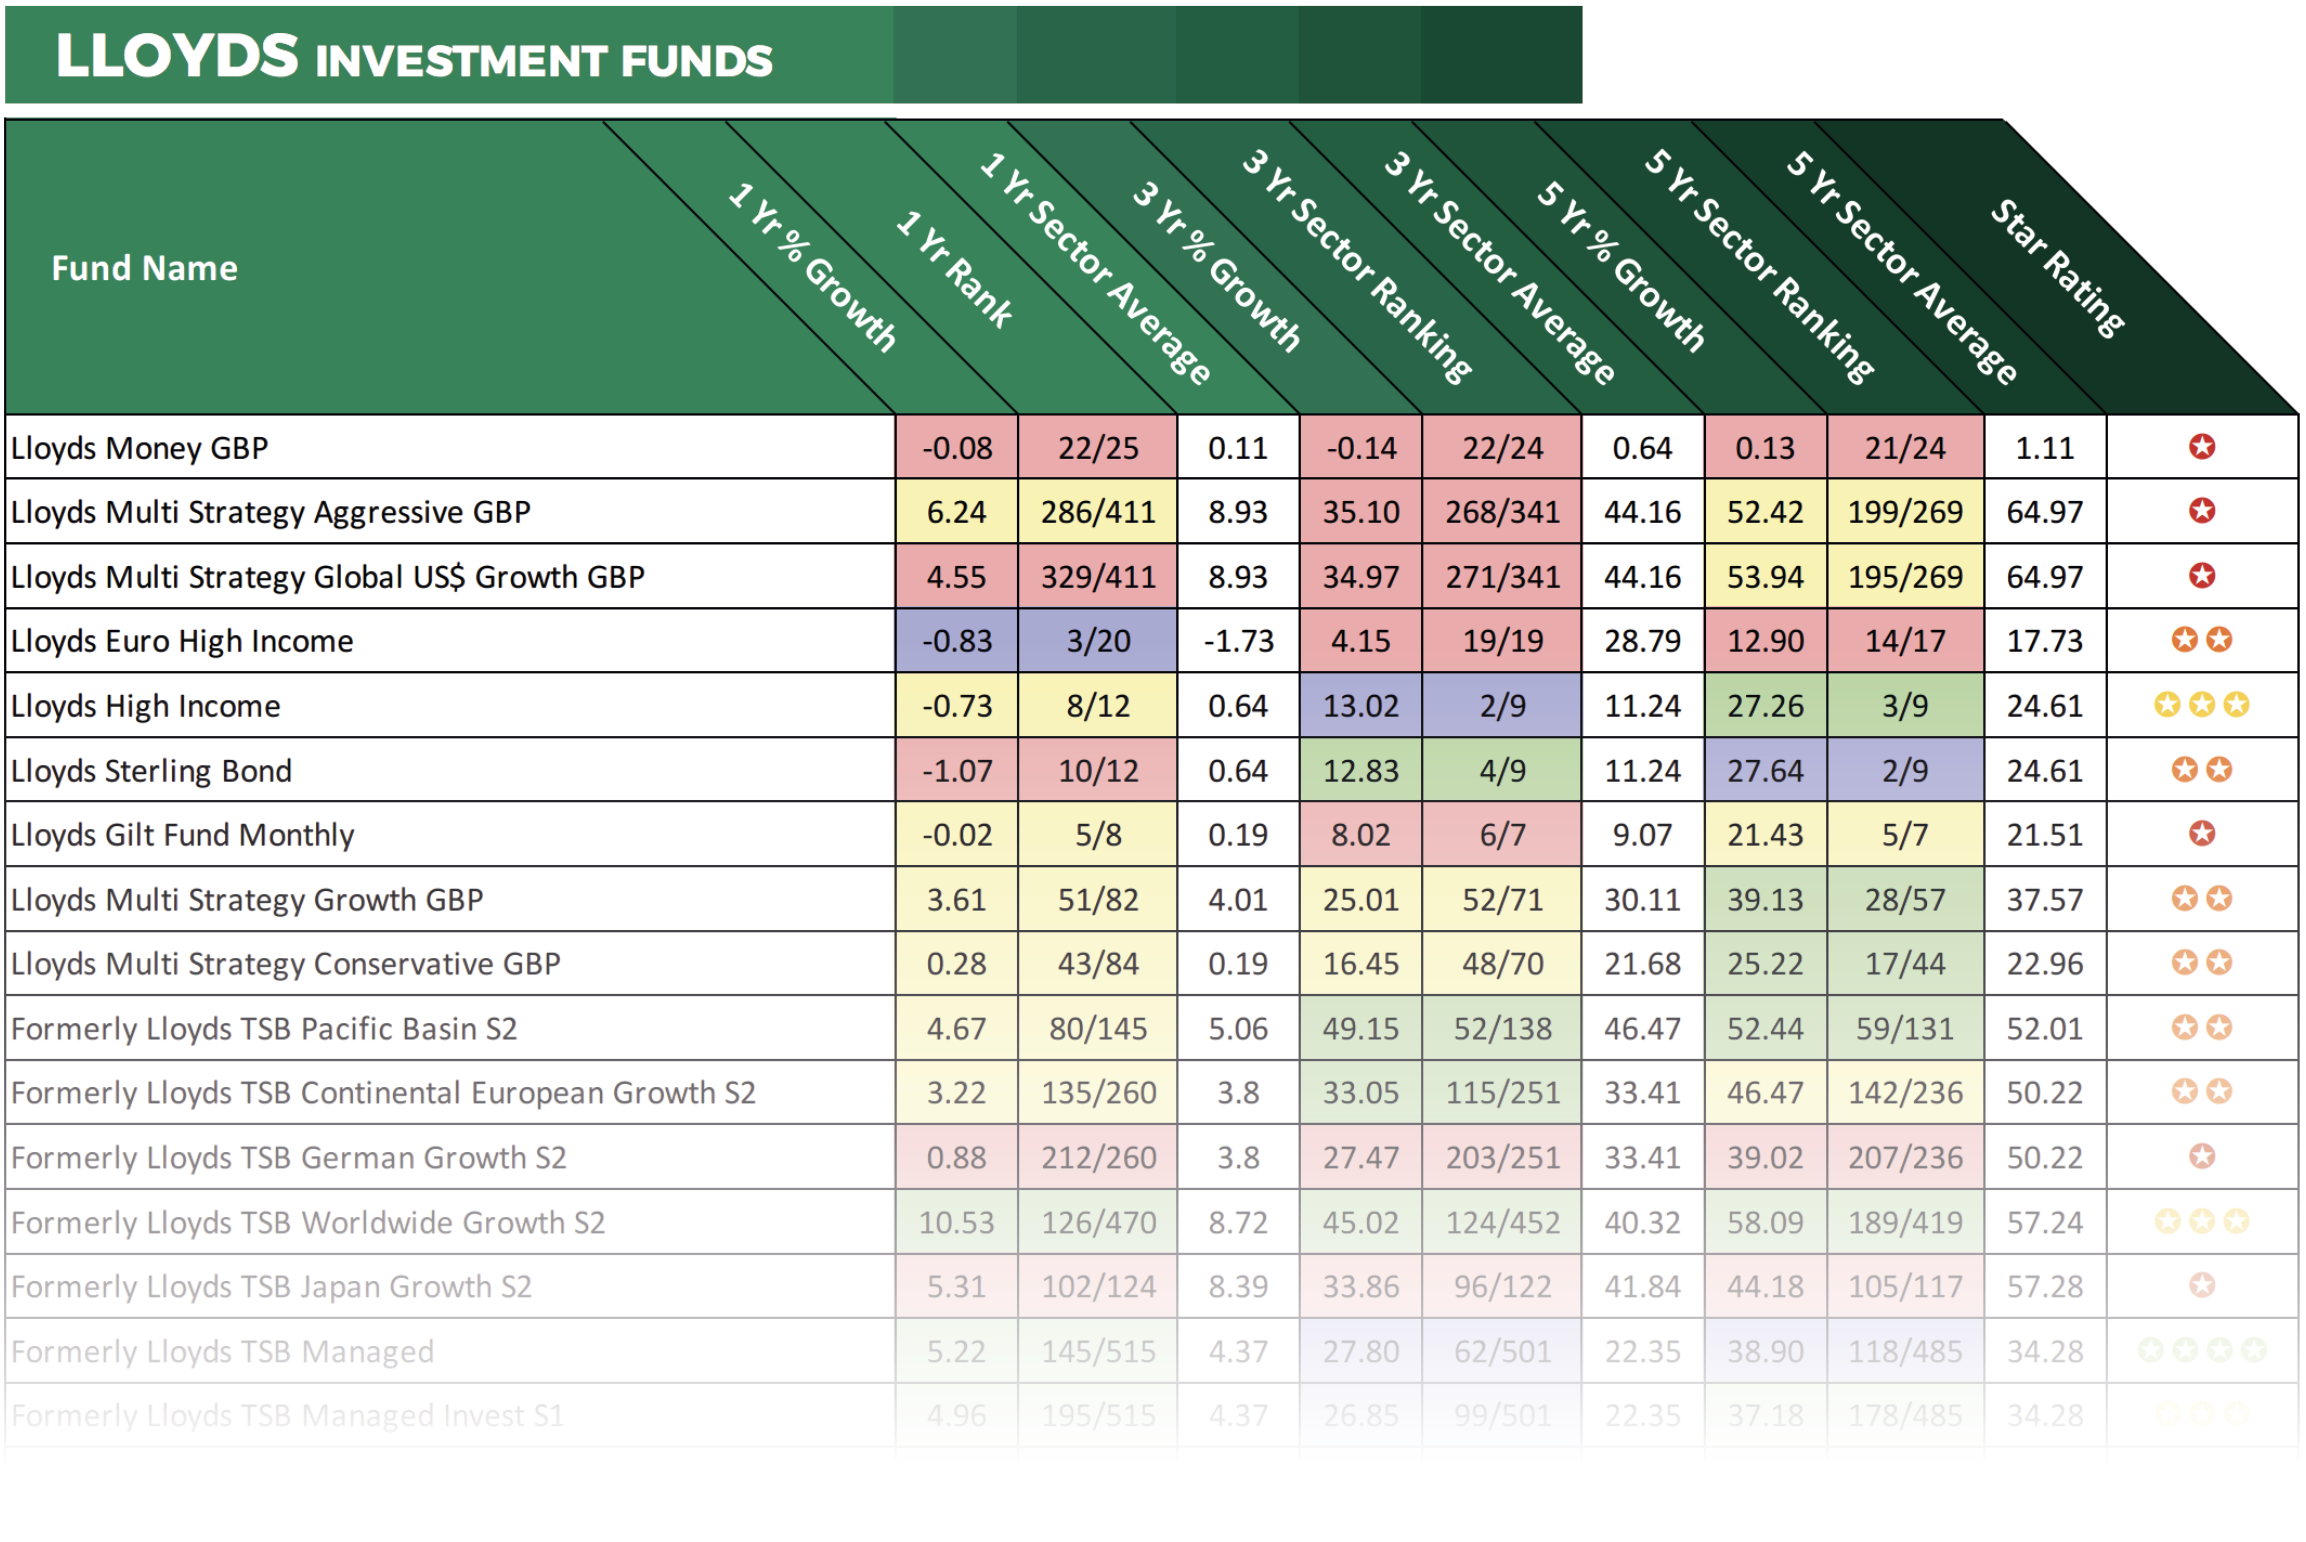 Lloyds fund performance